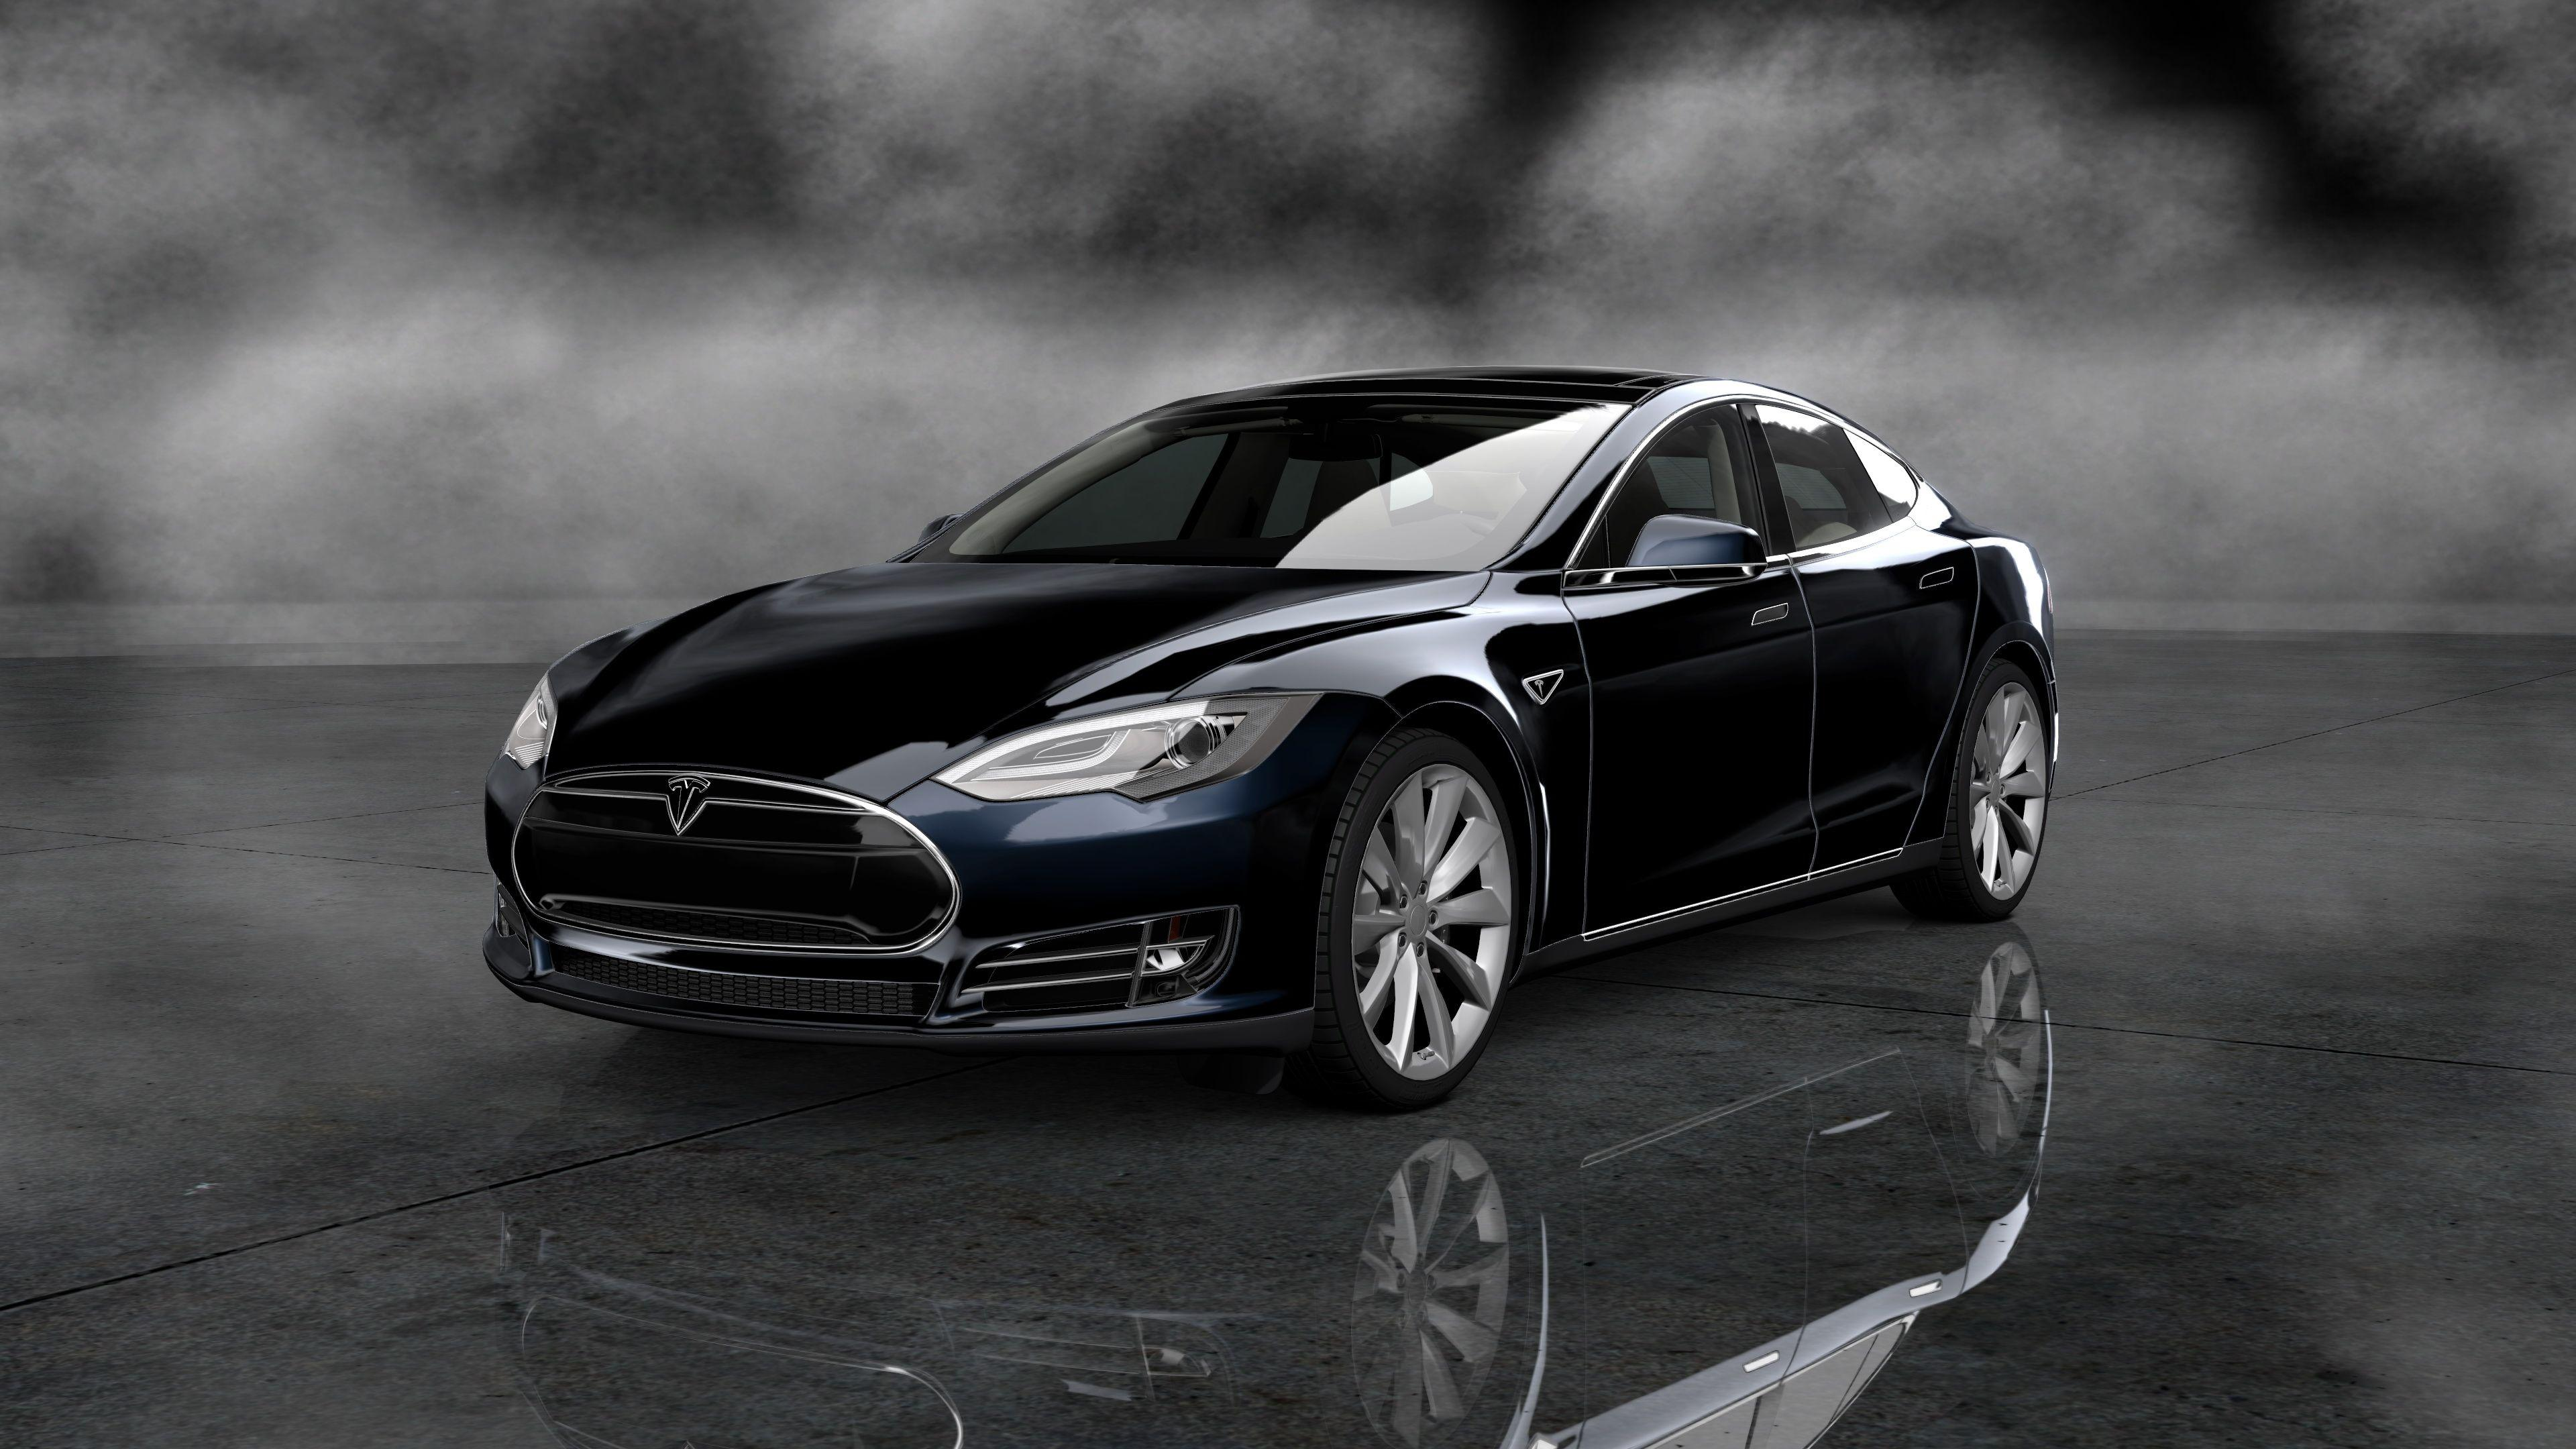 26 Latest Tesla Model S Images | SNP89 HD Quality Wallpapers